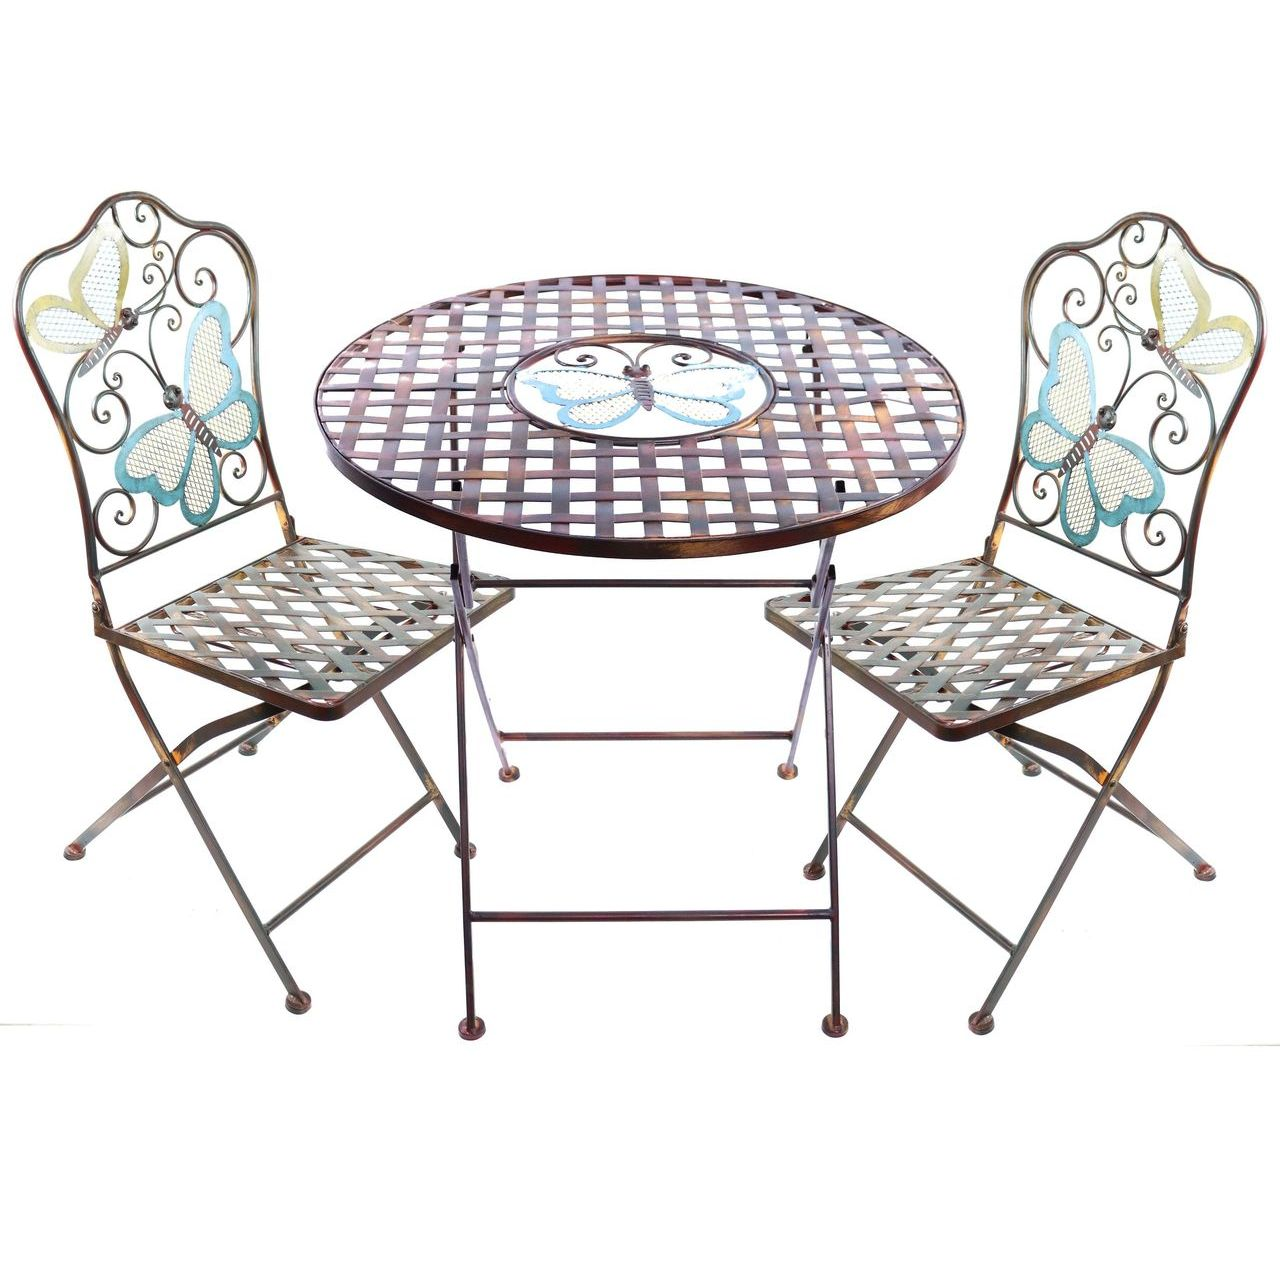 Alpine BVK574A Butterfly Table and Two Chairs Bistro Set